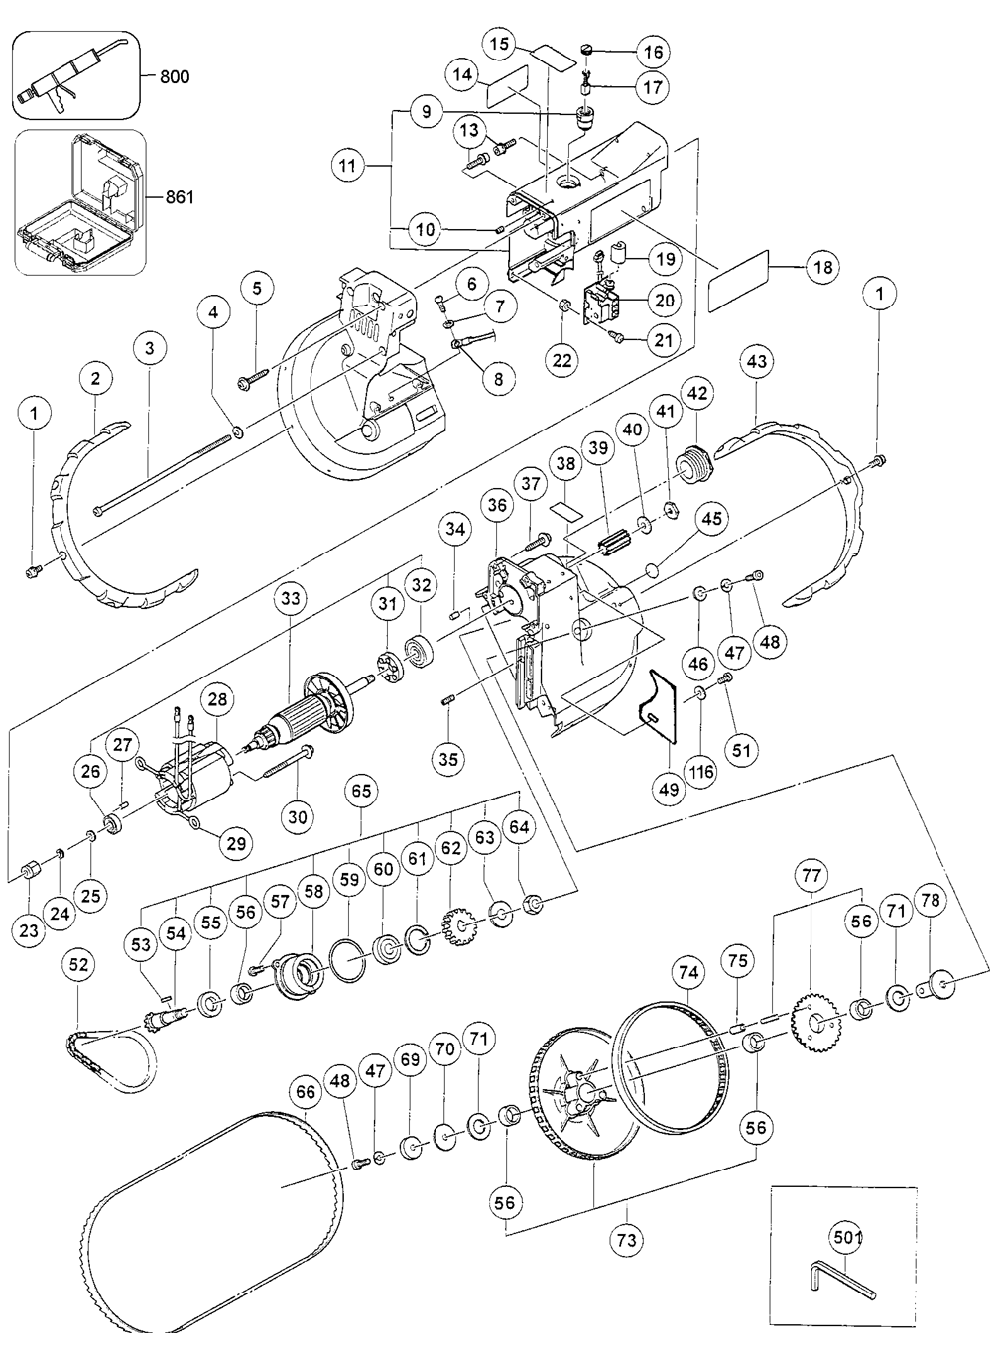 Hertner Battery Charger Wiring Diagram Ion Diagram Wiring